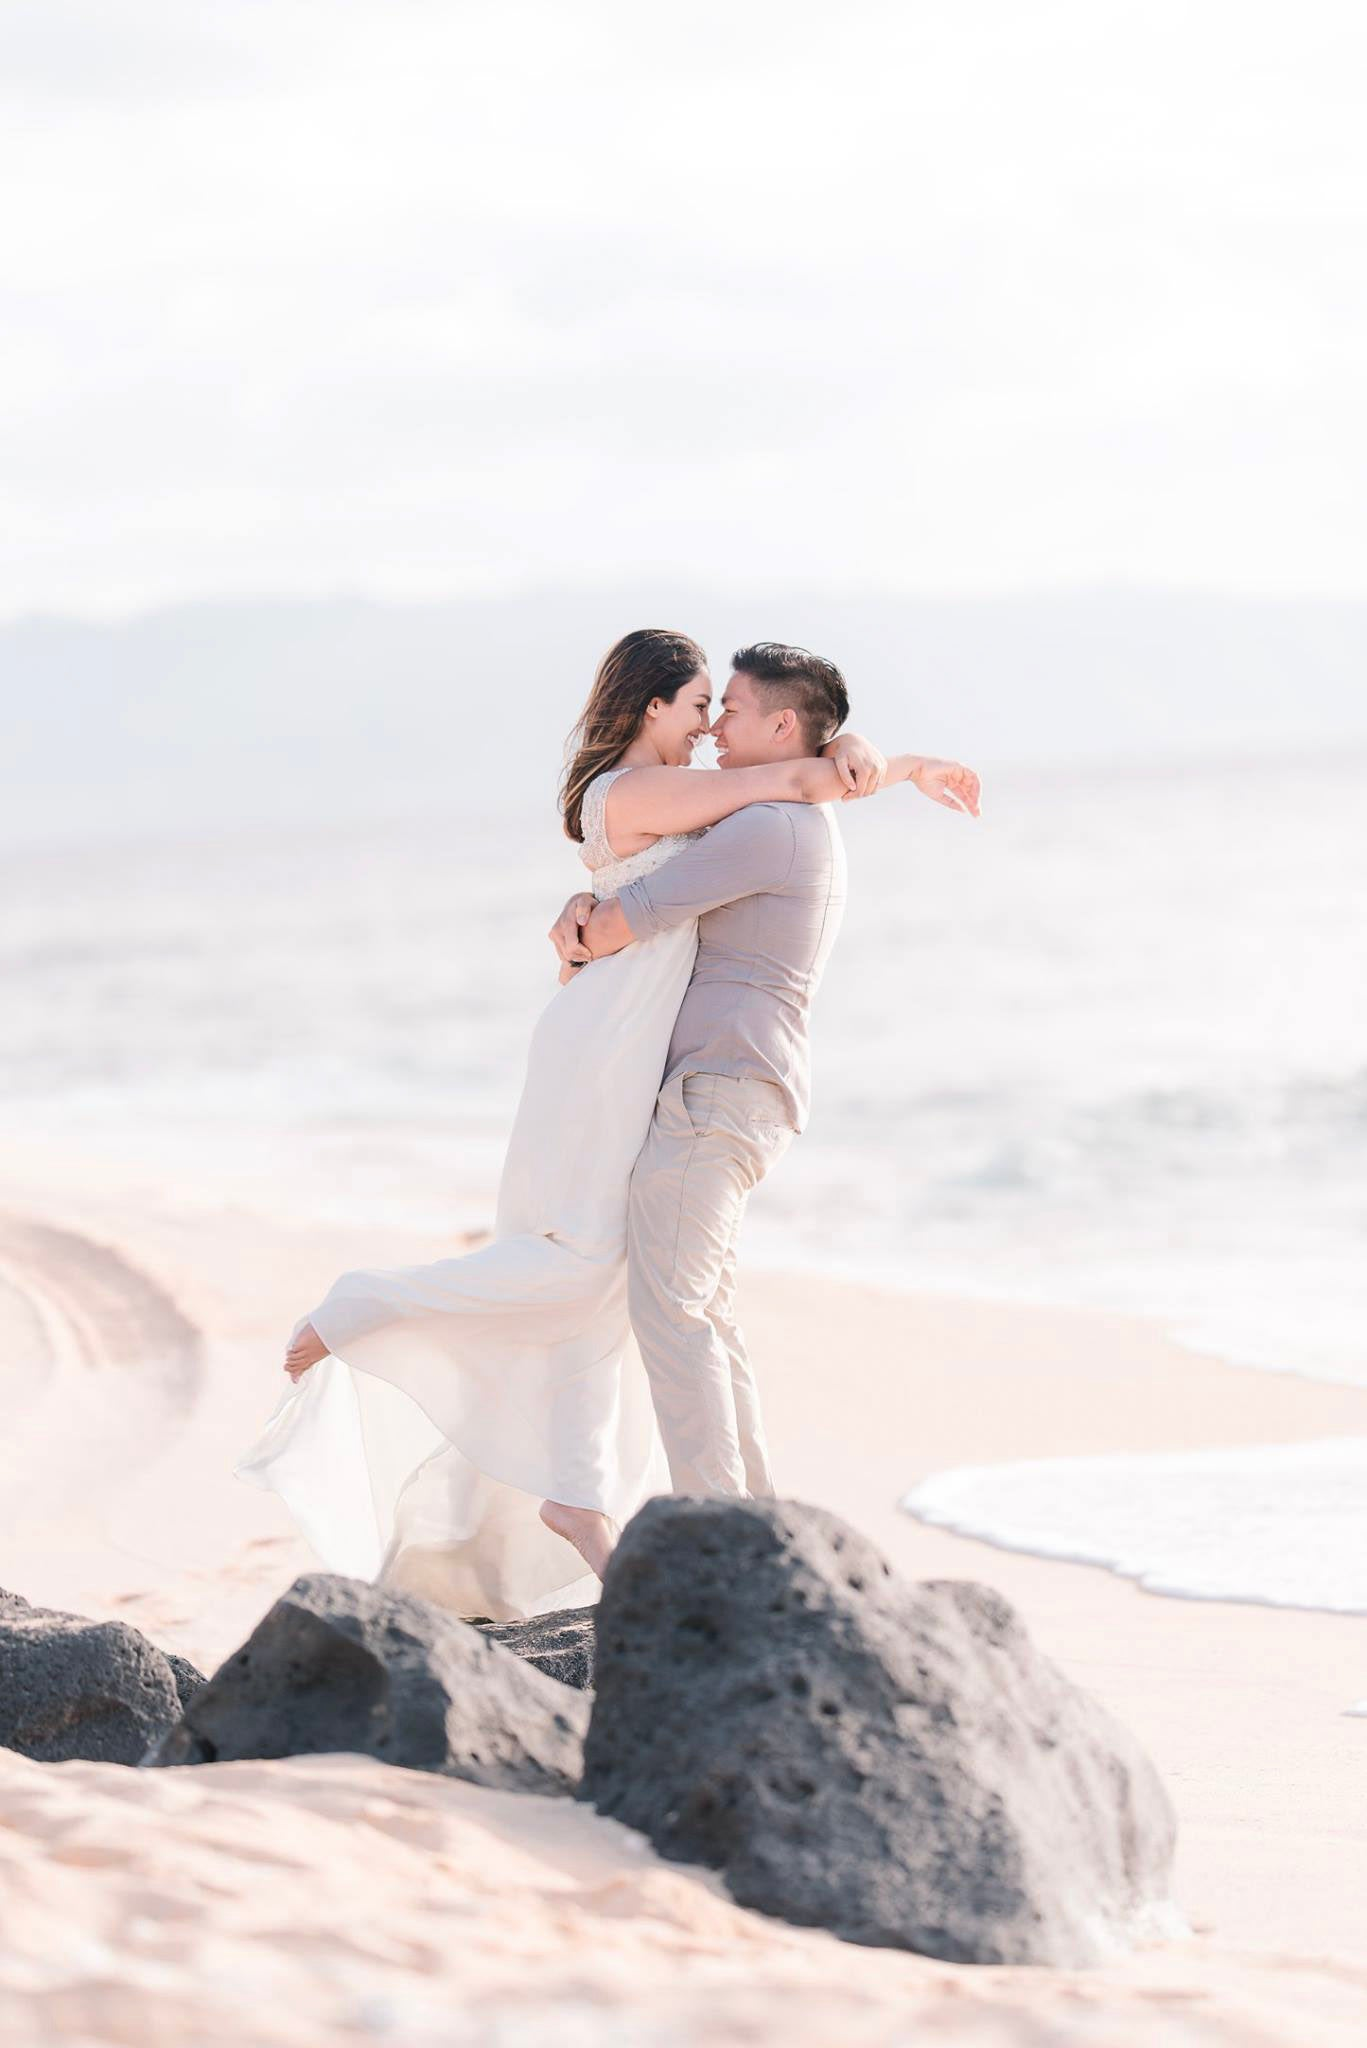 A bride and groom hugging each other at a beach